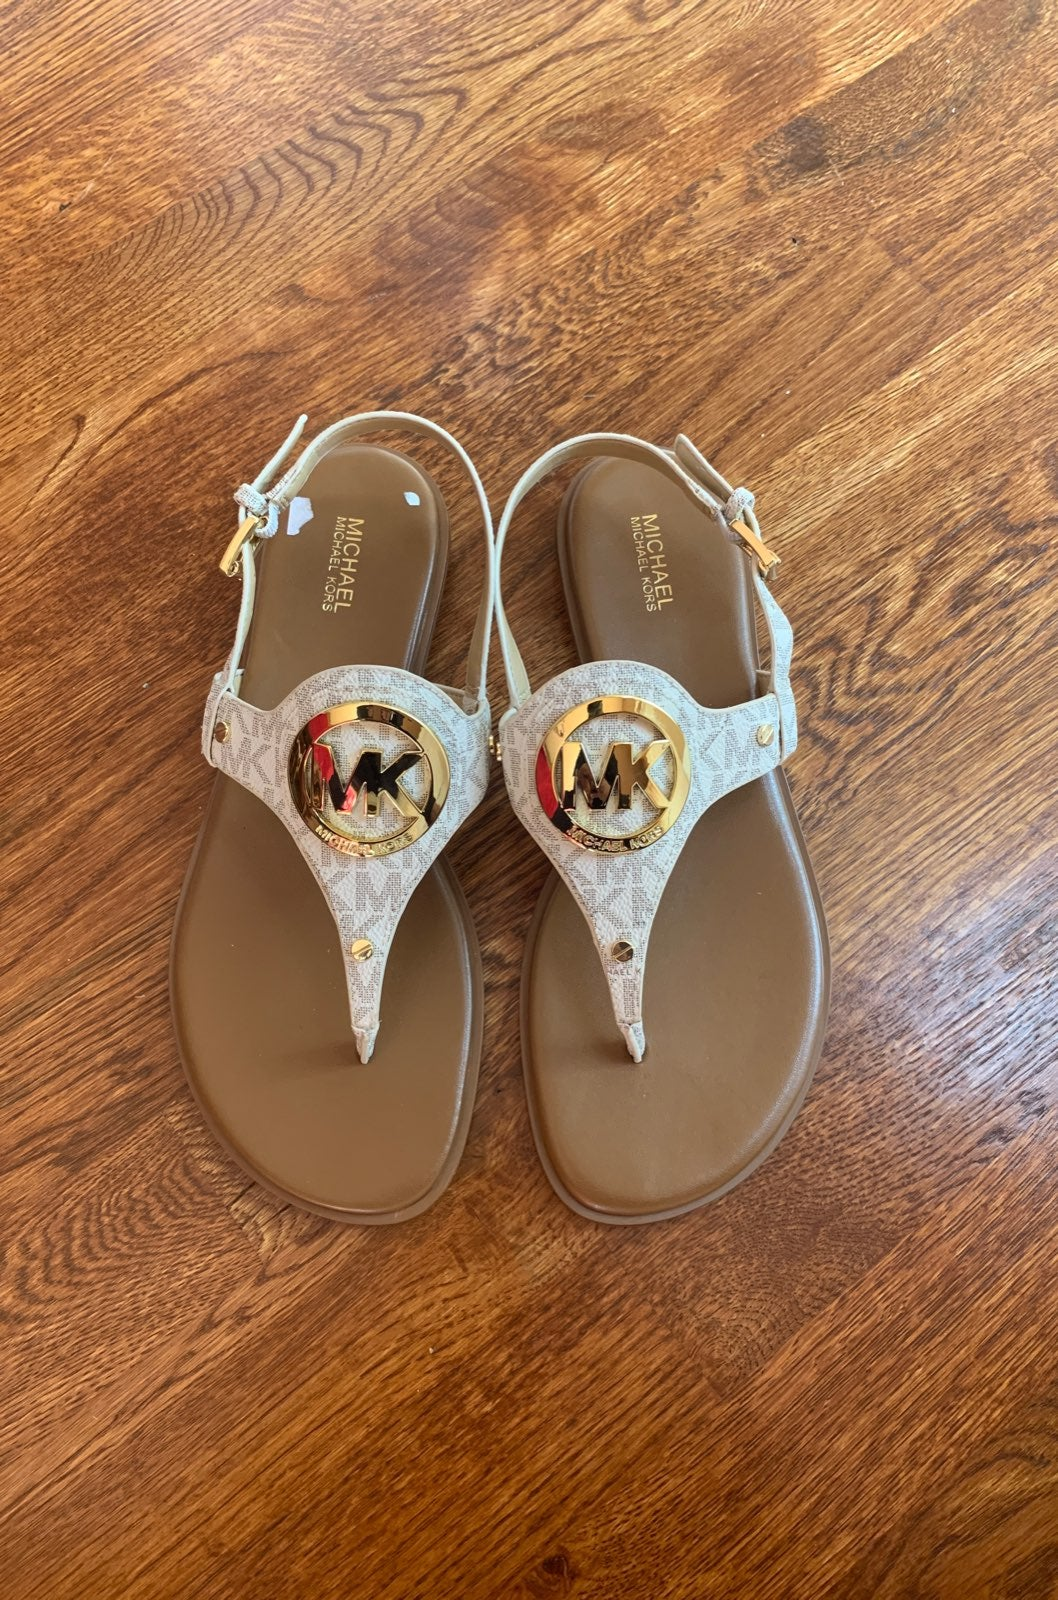 Michael Kors sandals sz 8